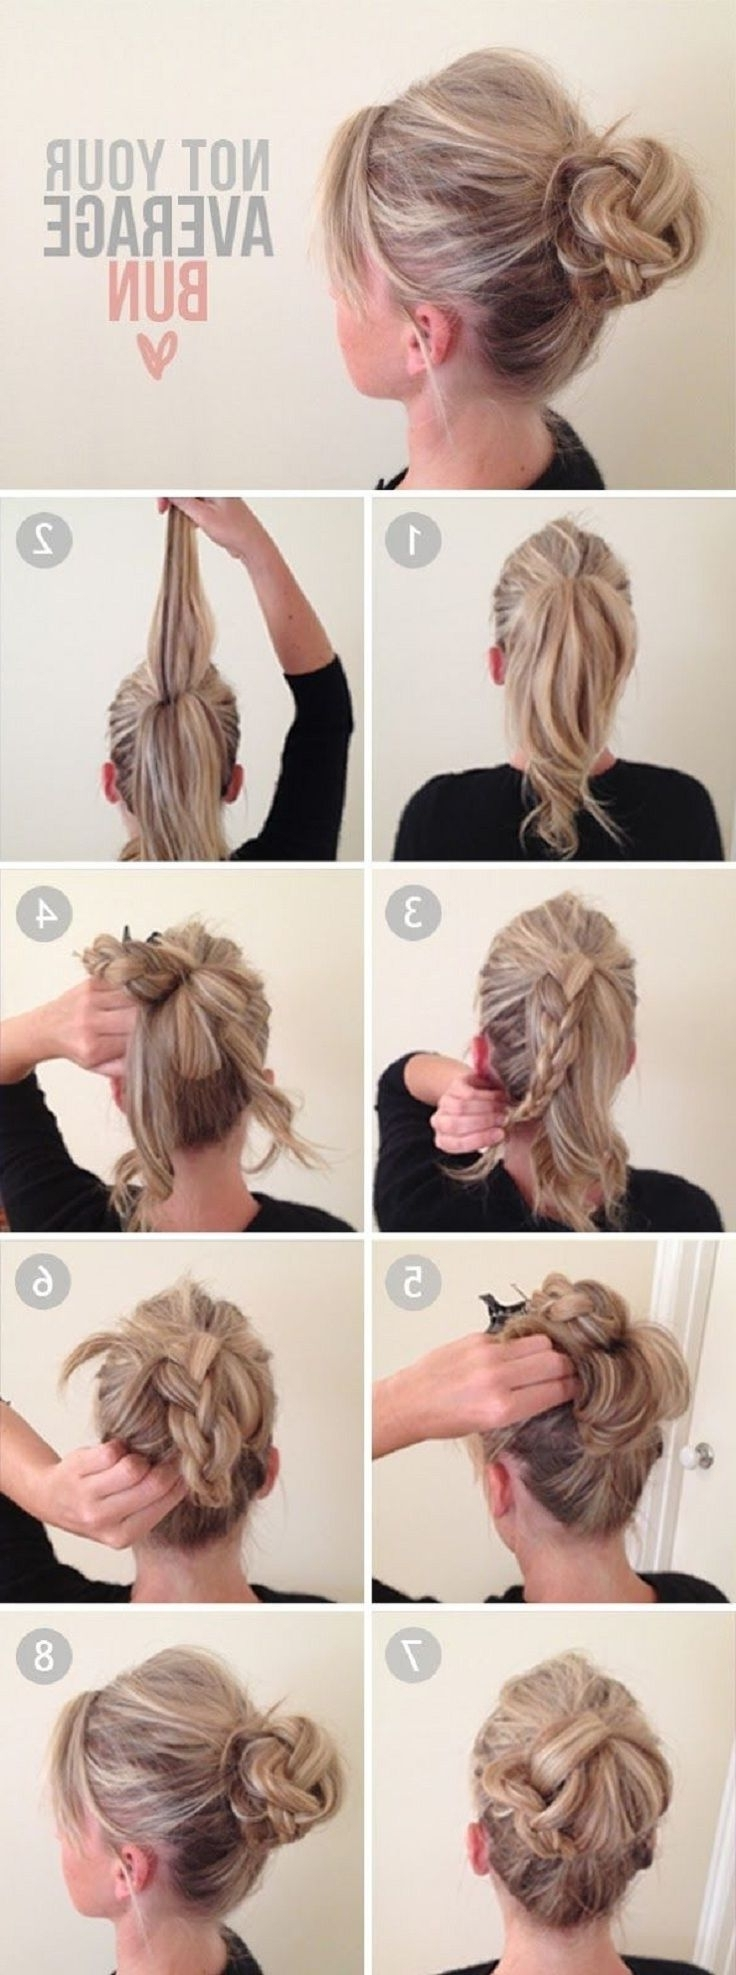 14 Amazing Double Braid Bun Hairstyles – Pretty Designs Inside Most Popular Double Braided Hairstyles (View 10 of 20)